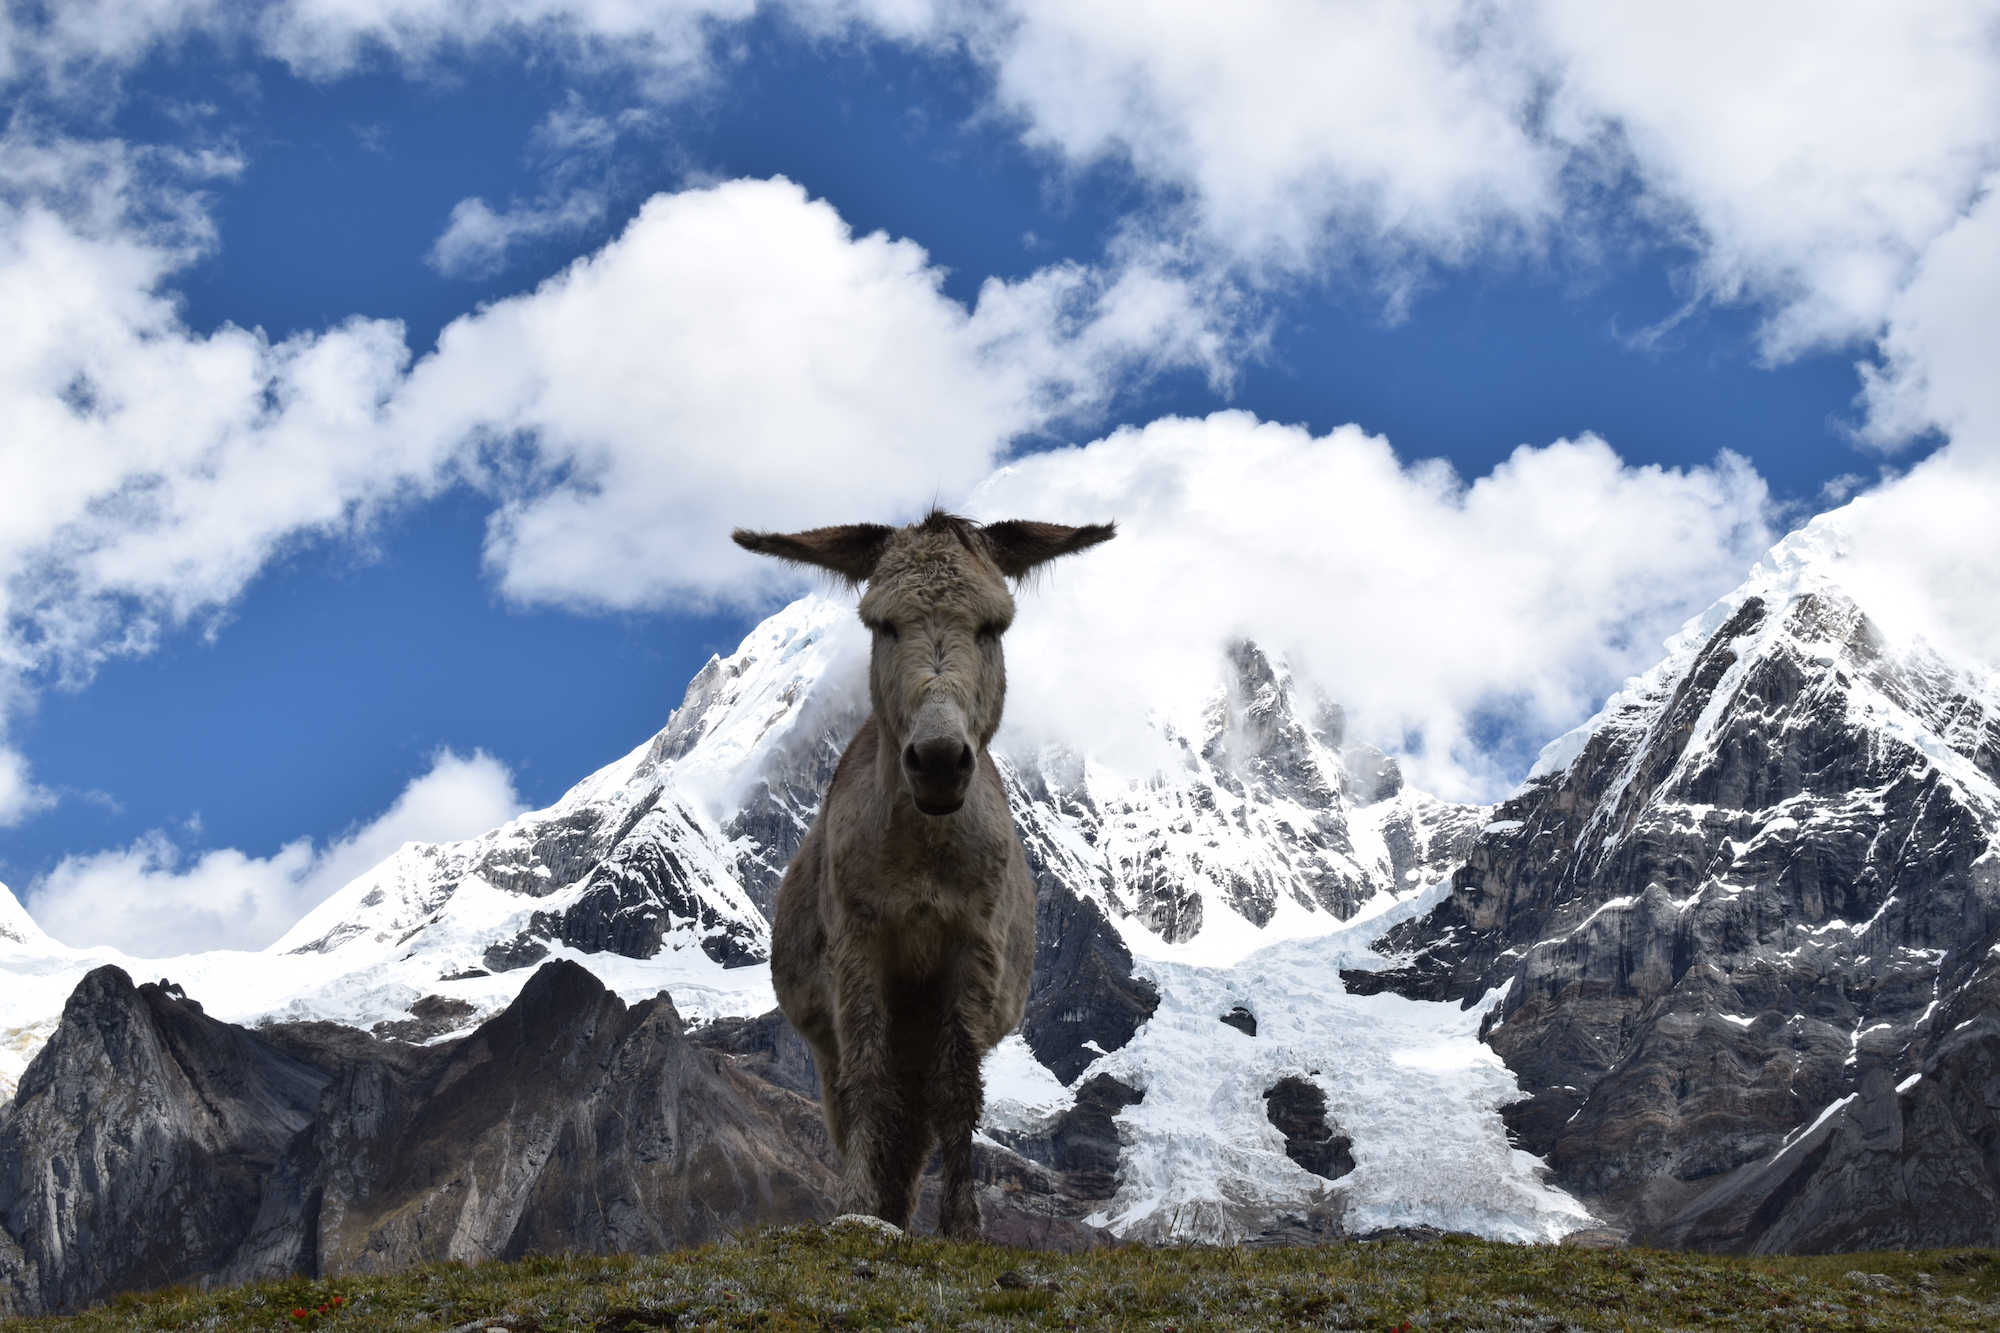 Donkey in front of snow capped mountains